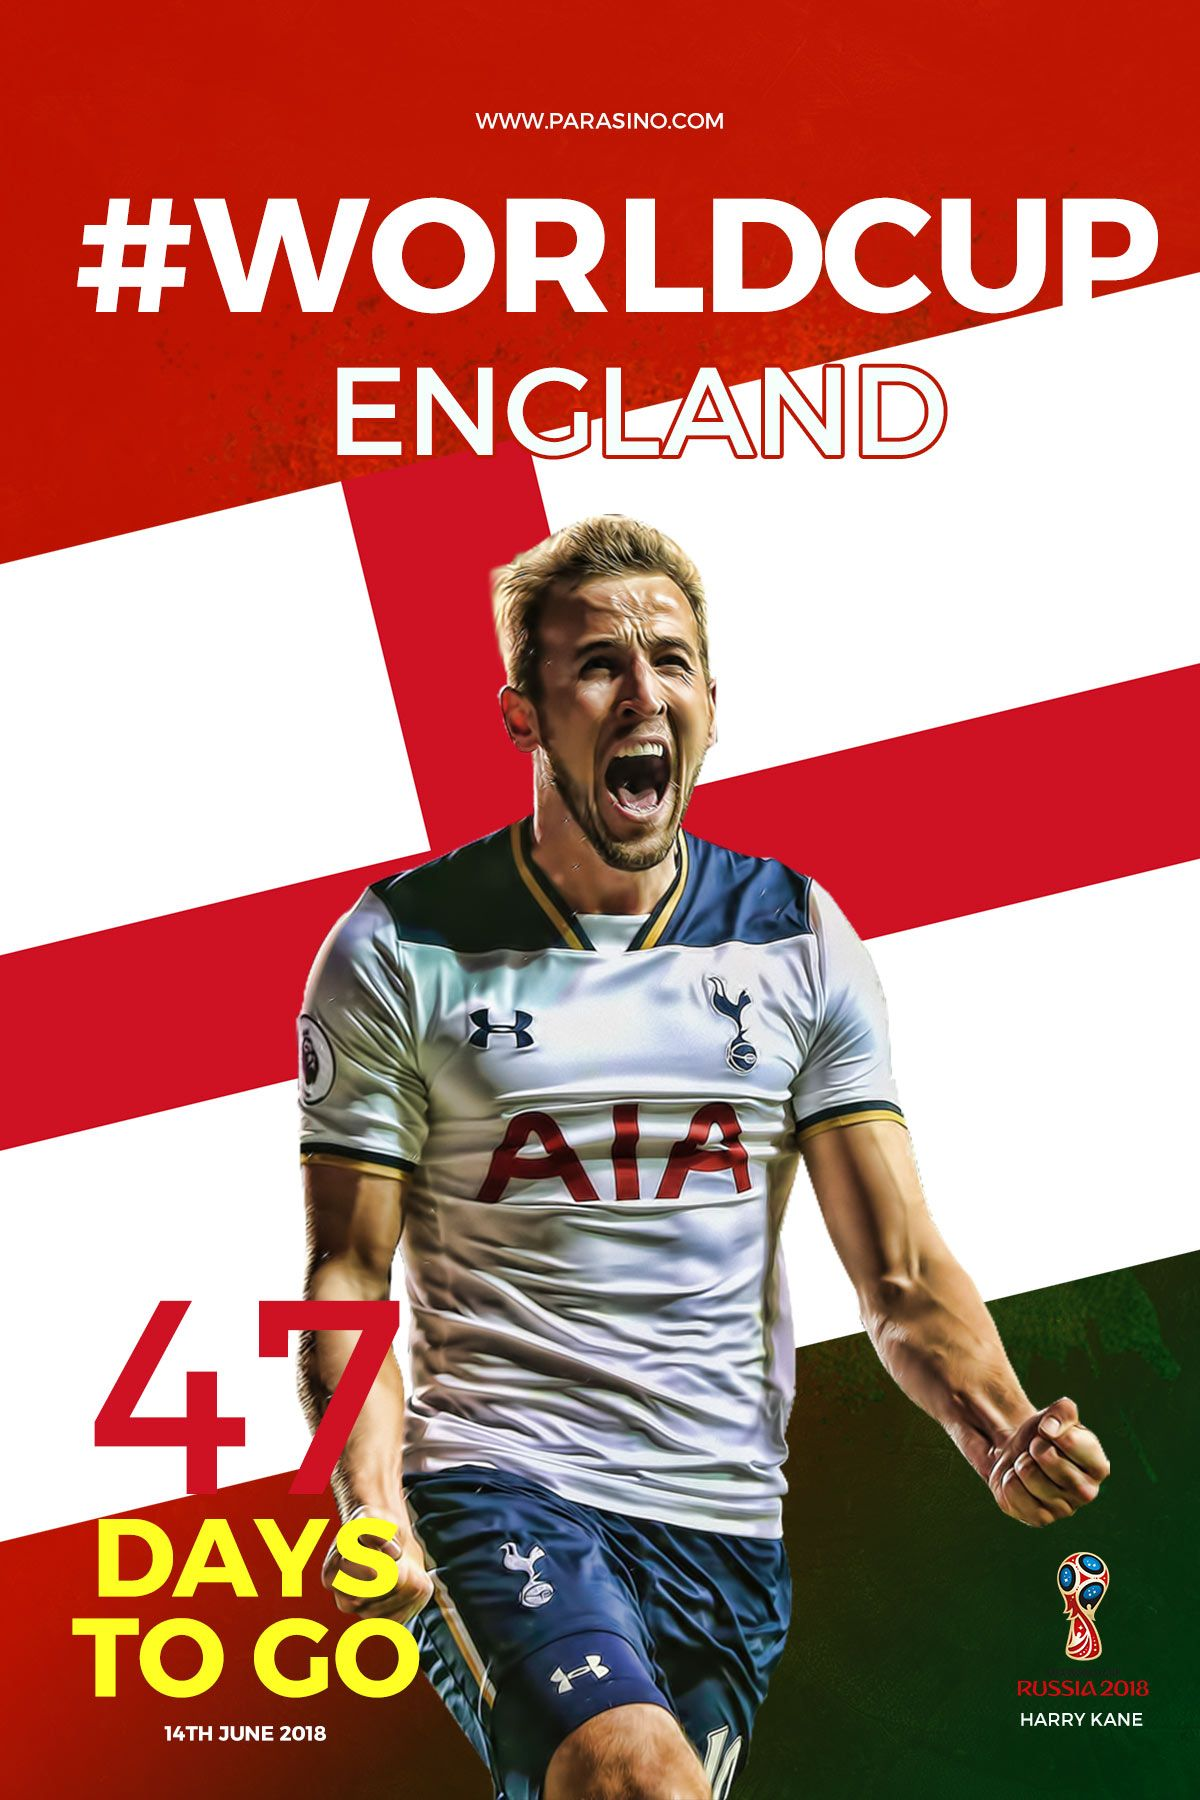 worldcup england parasino 47 DAYS TO GO https//www